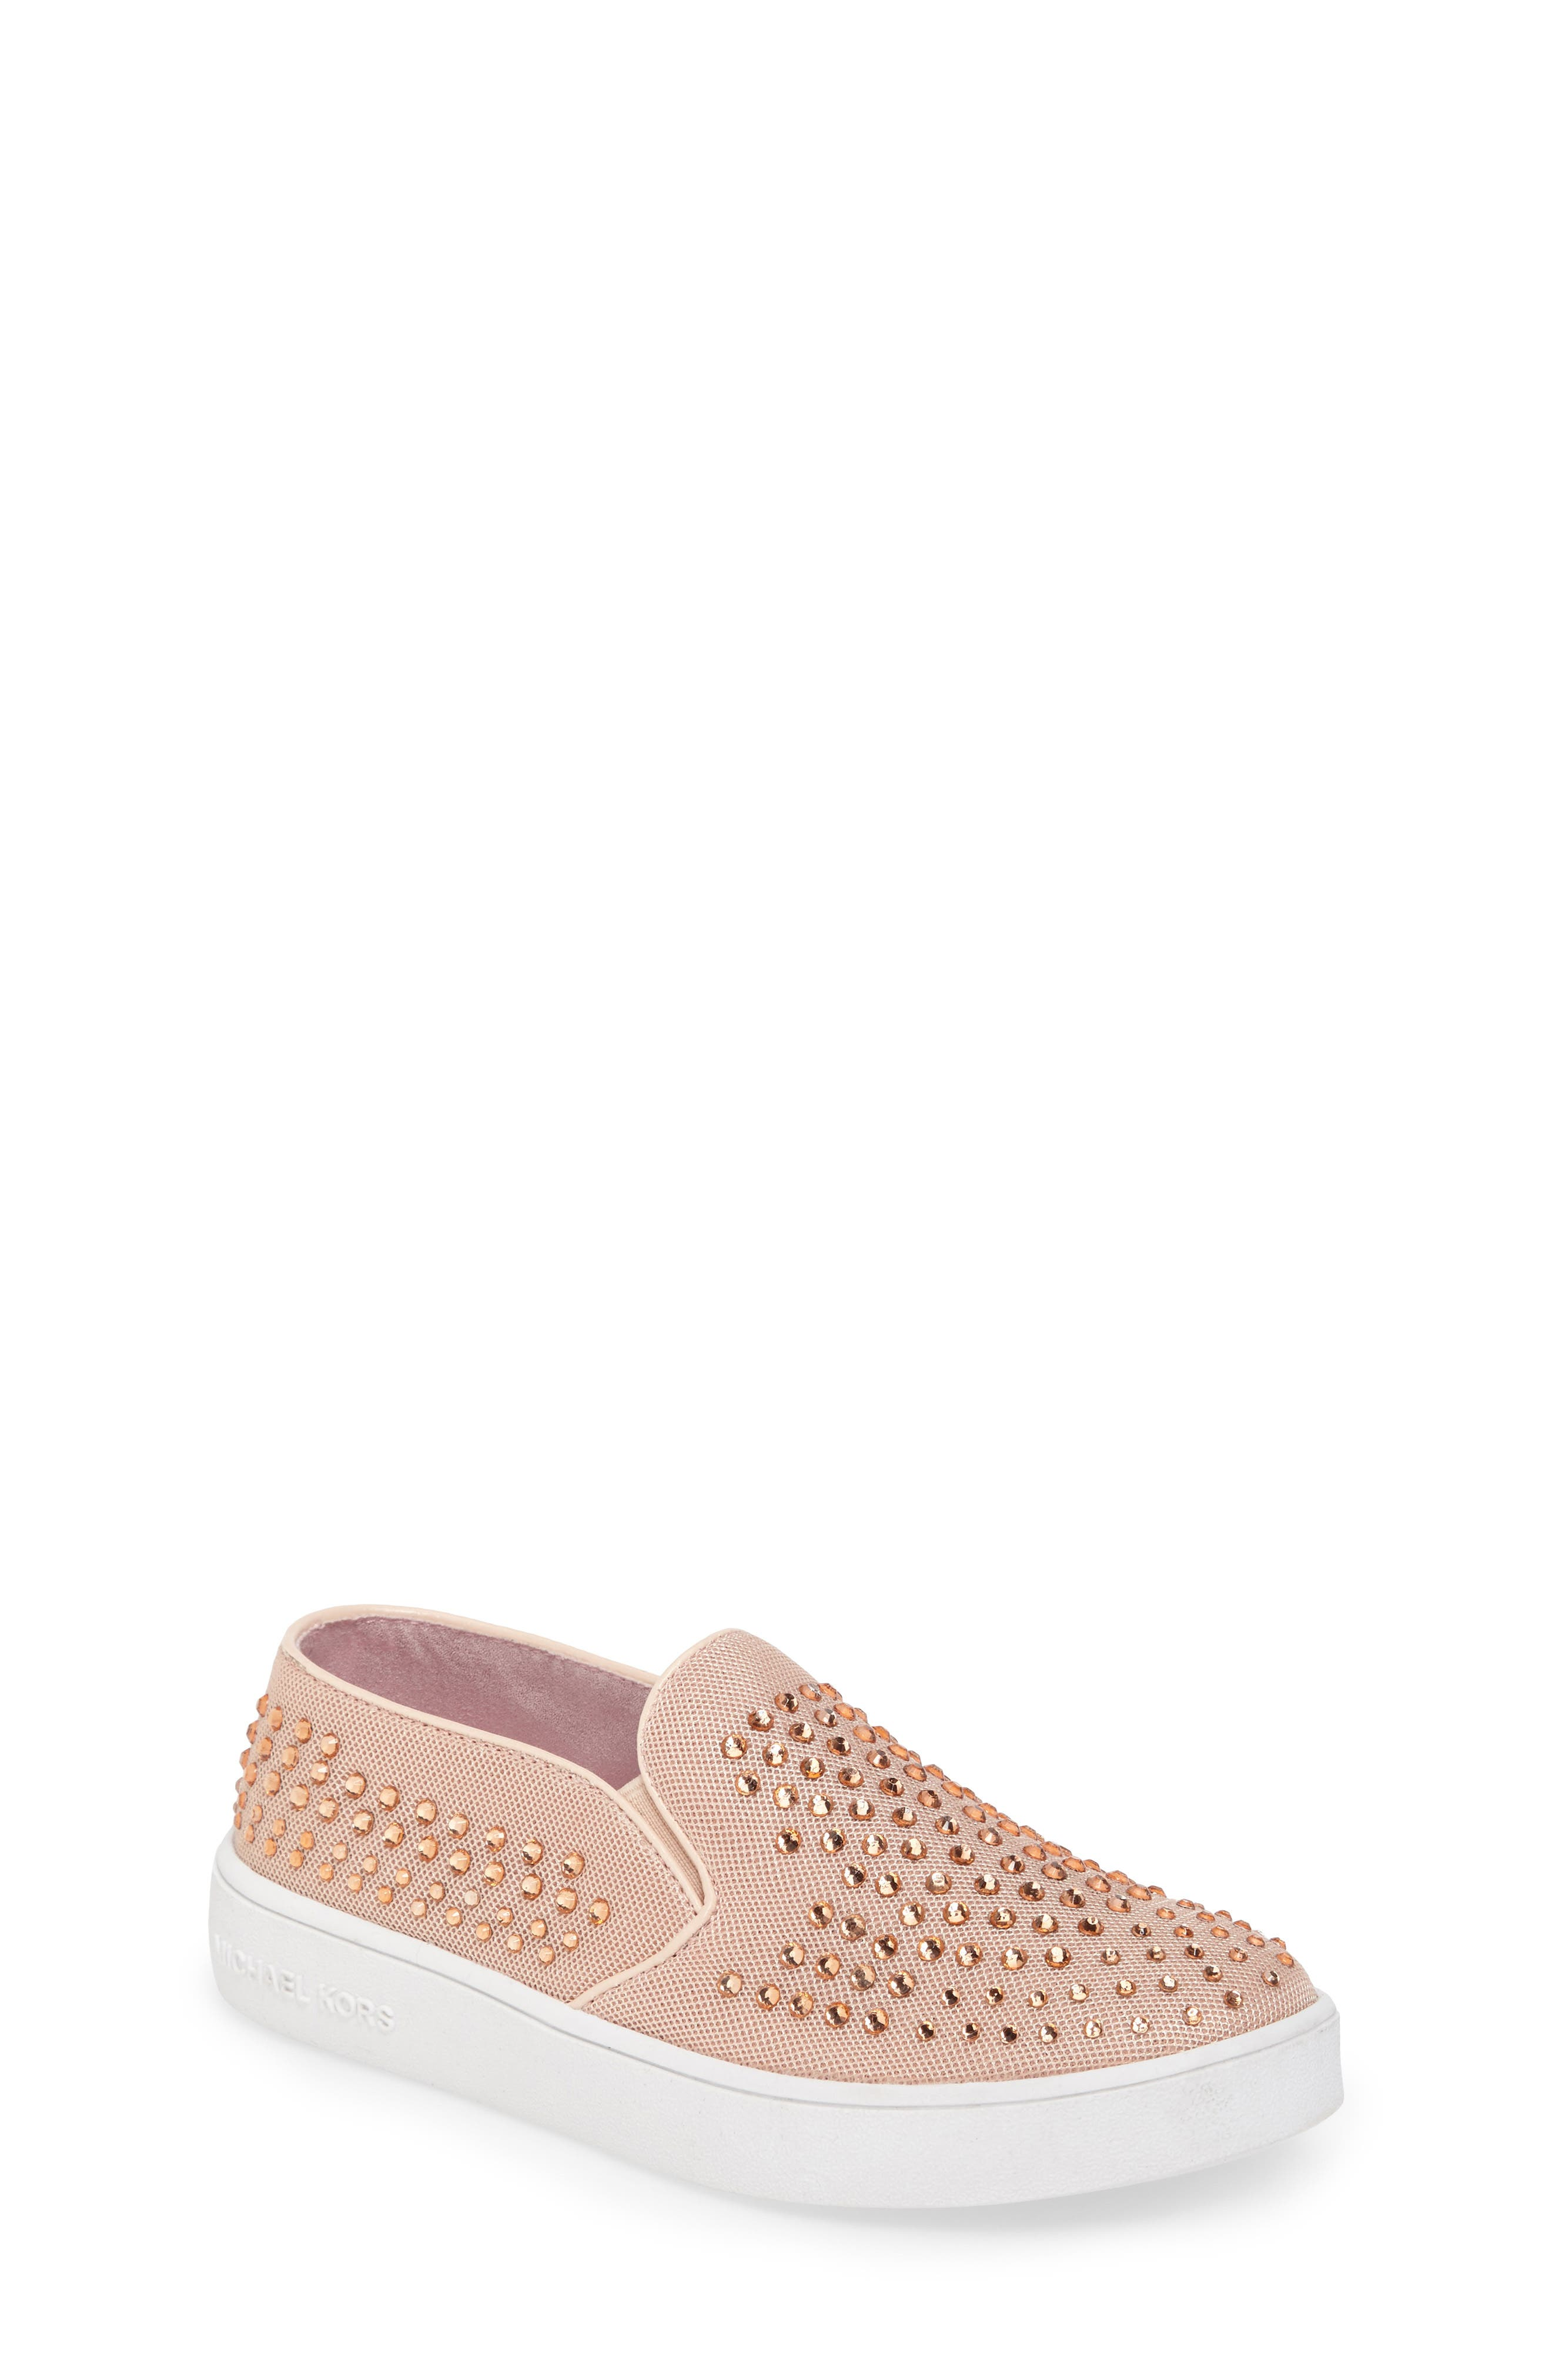 MICHAEL Michael Kors Ivy Meadow Slip-On Sneaker (Walker, Toddler, Little Kid & Big Kid)